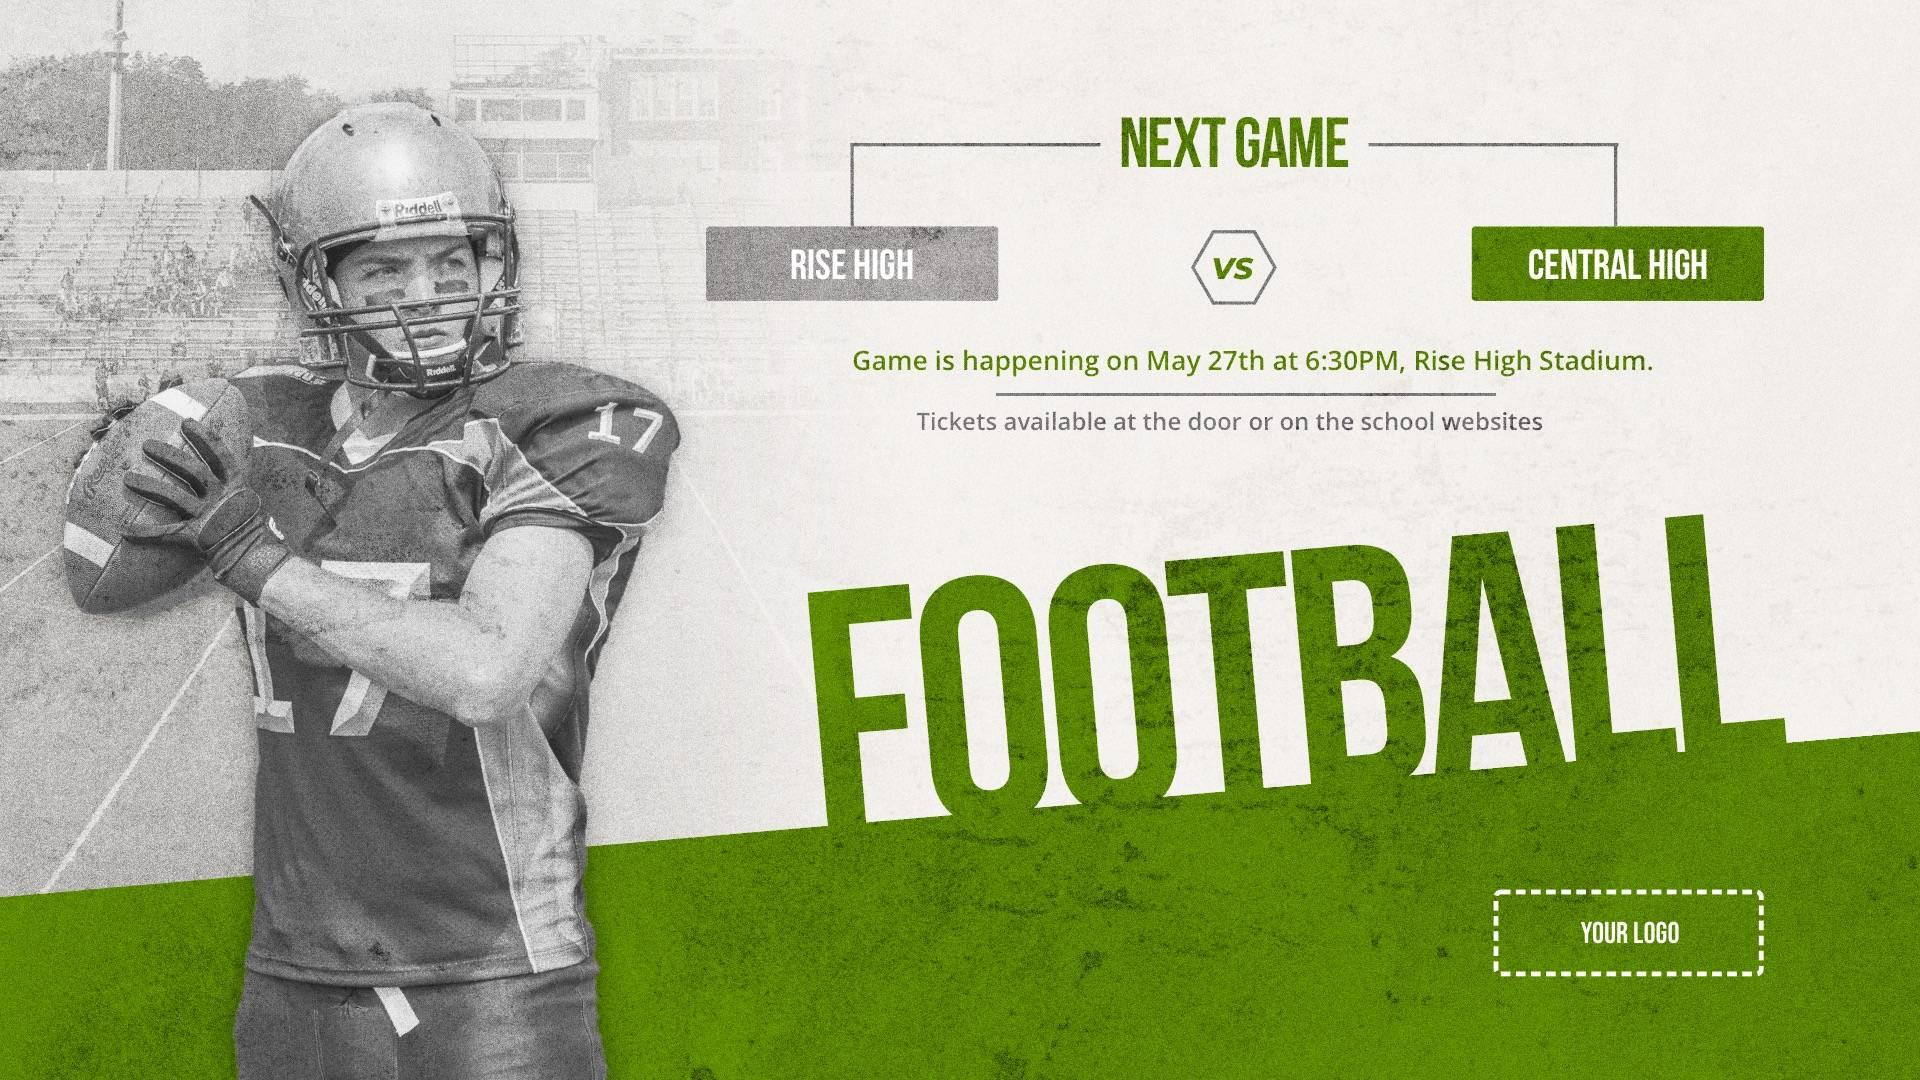 Football Game - Sports Digital Signage Template